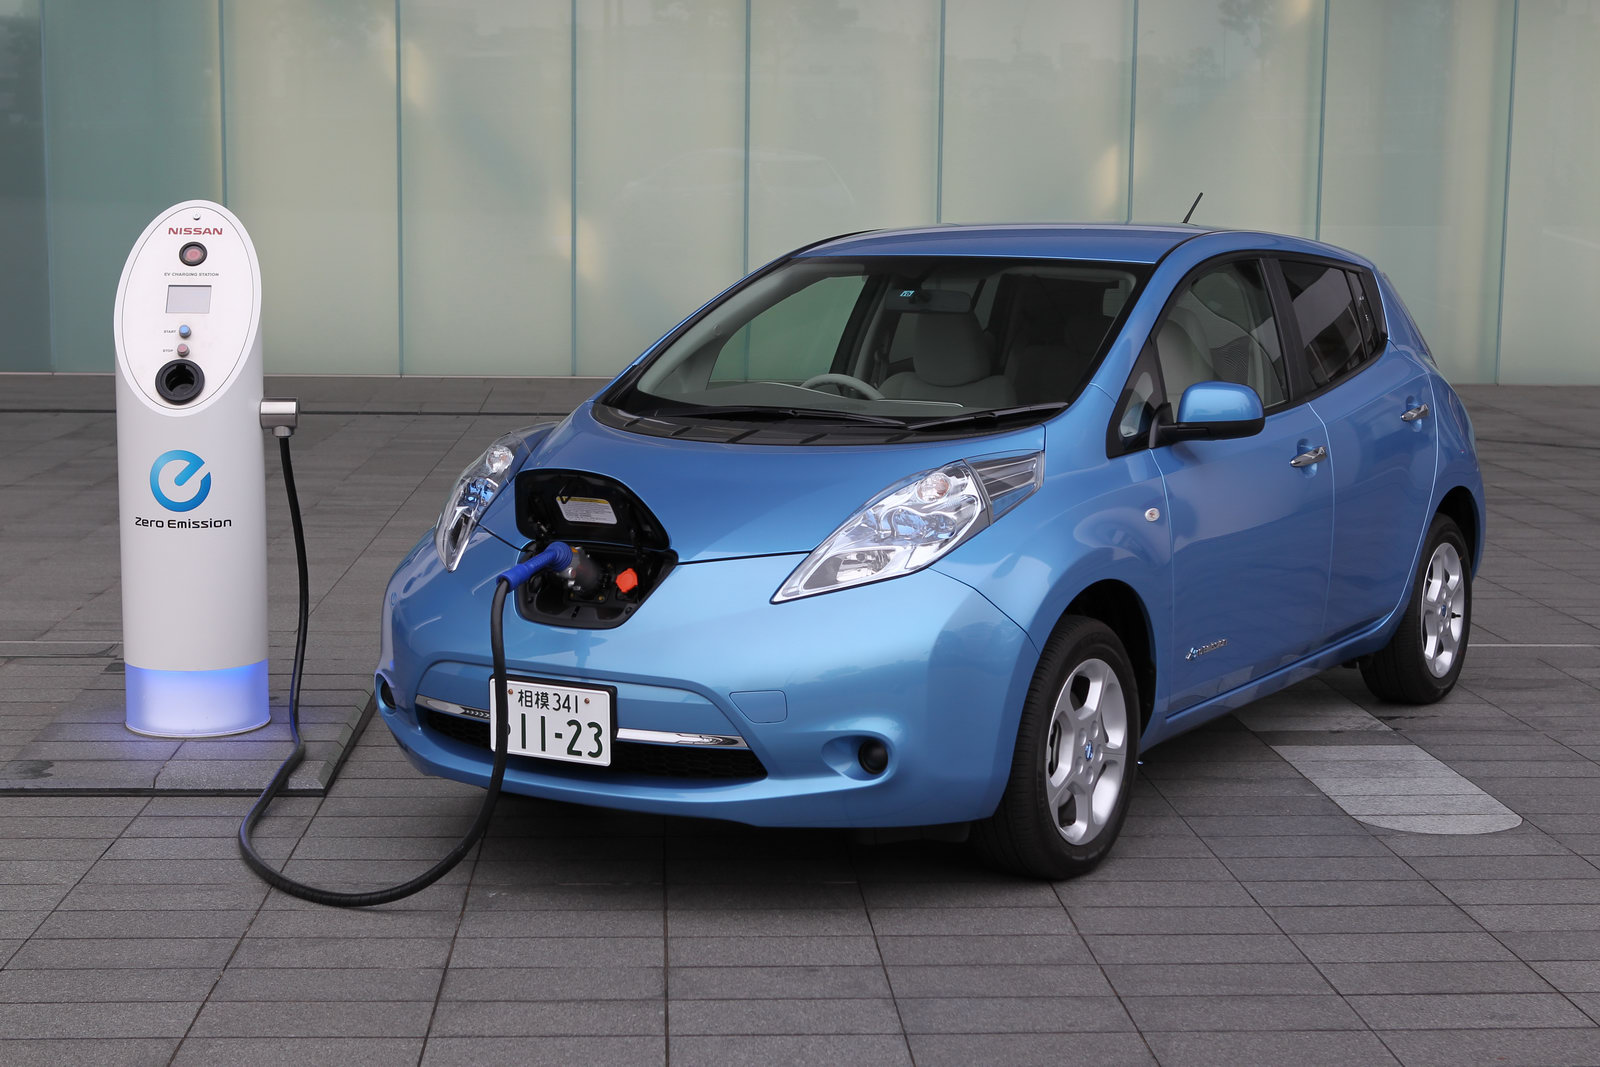 the charging port at the front of the nissan leaf       image: automotnews.com